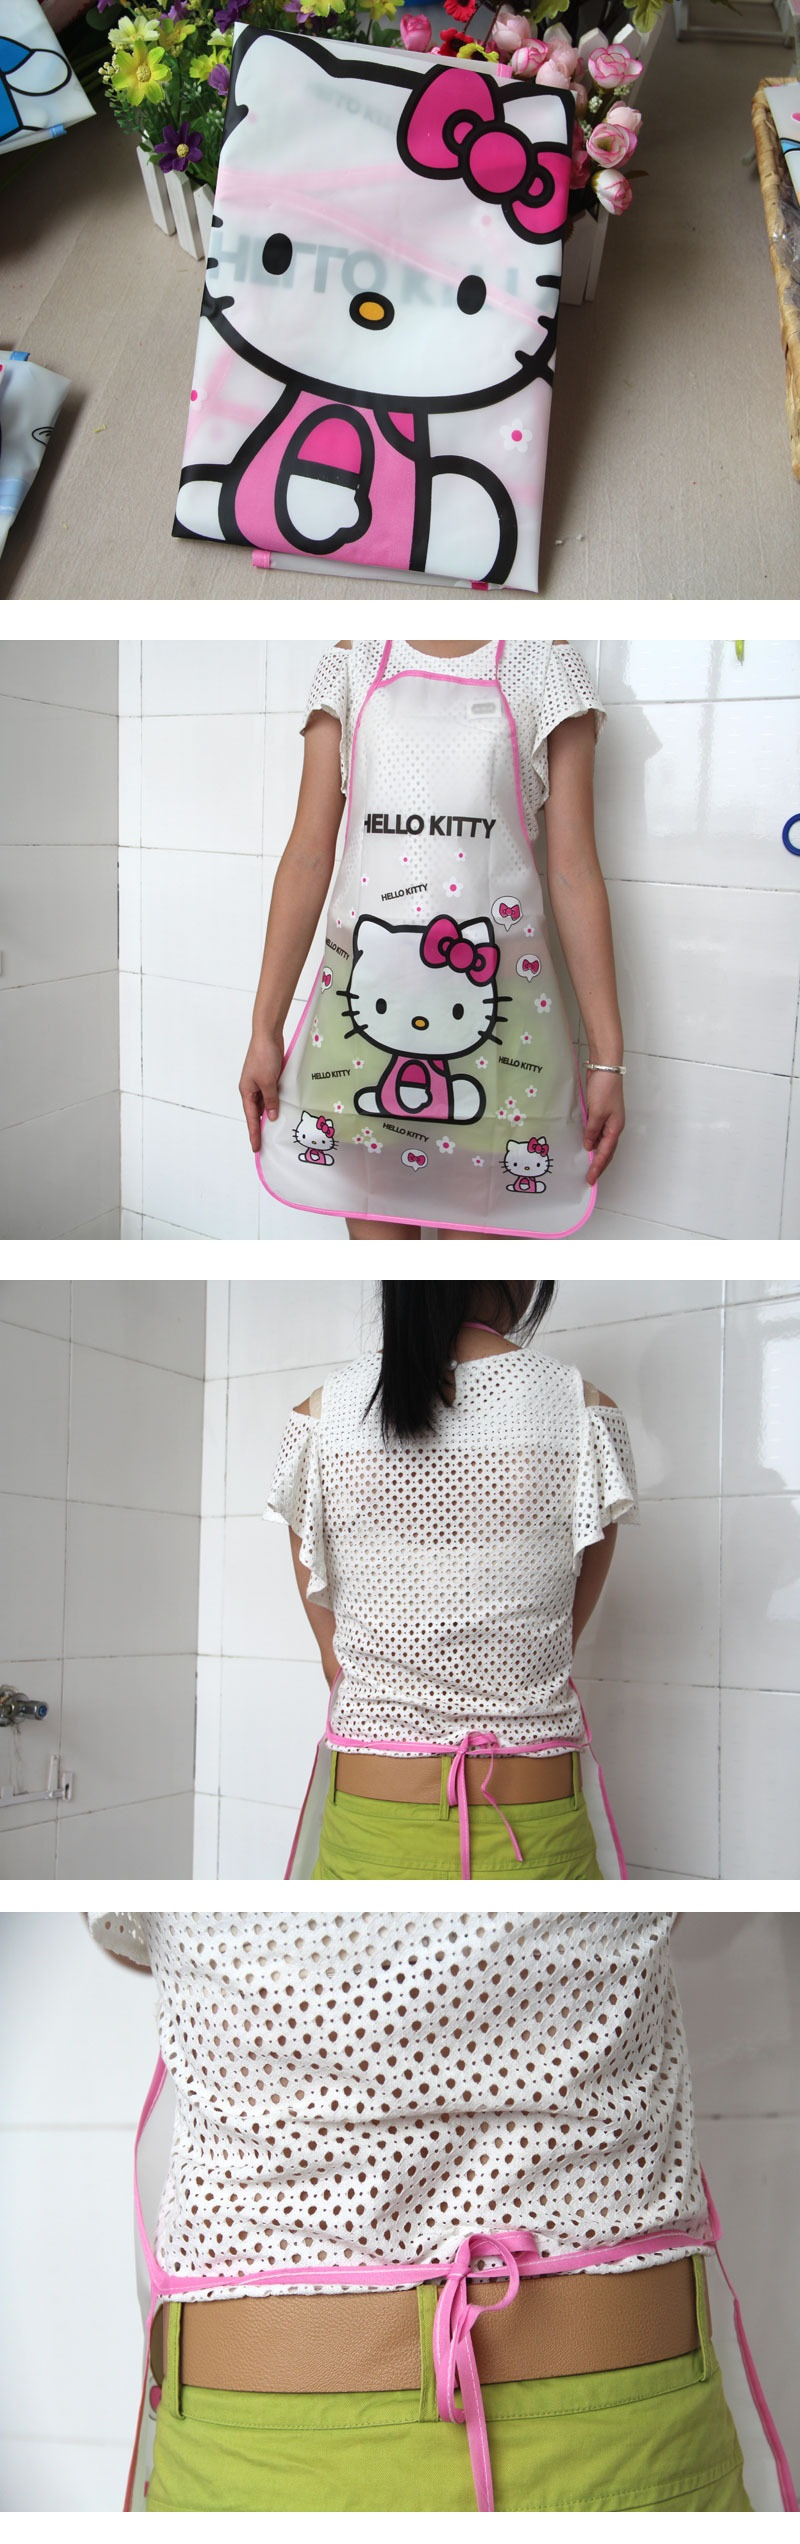 Home Must Have Lovely Princess Kitchen Apron Hello Kitty